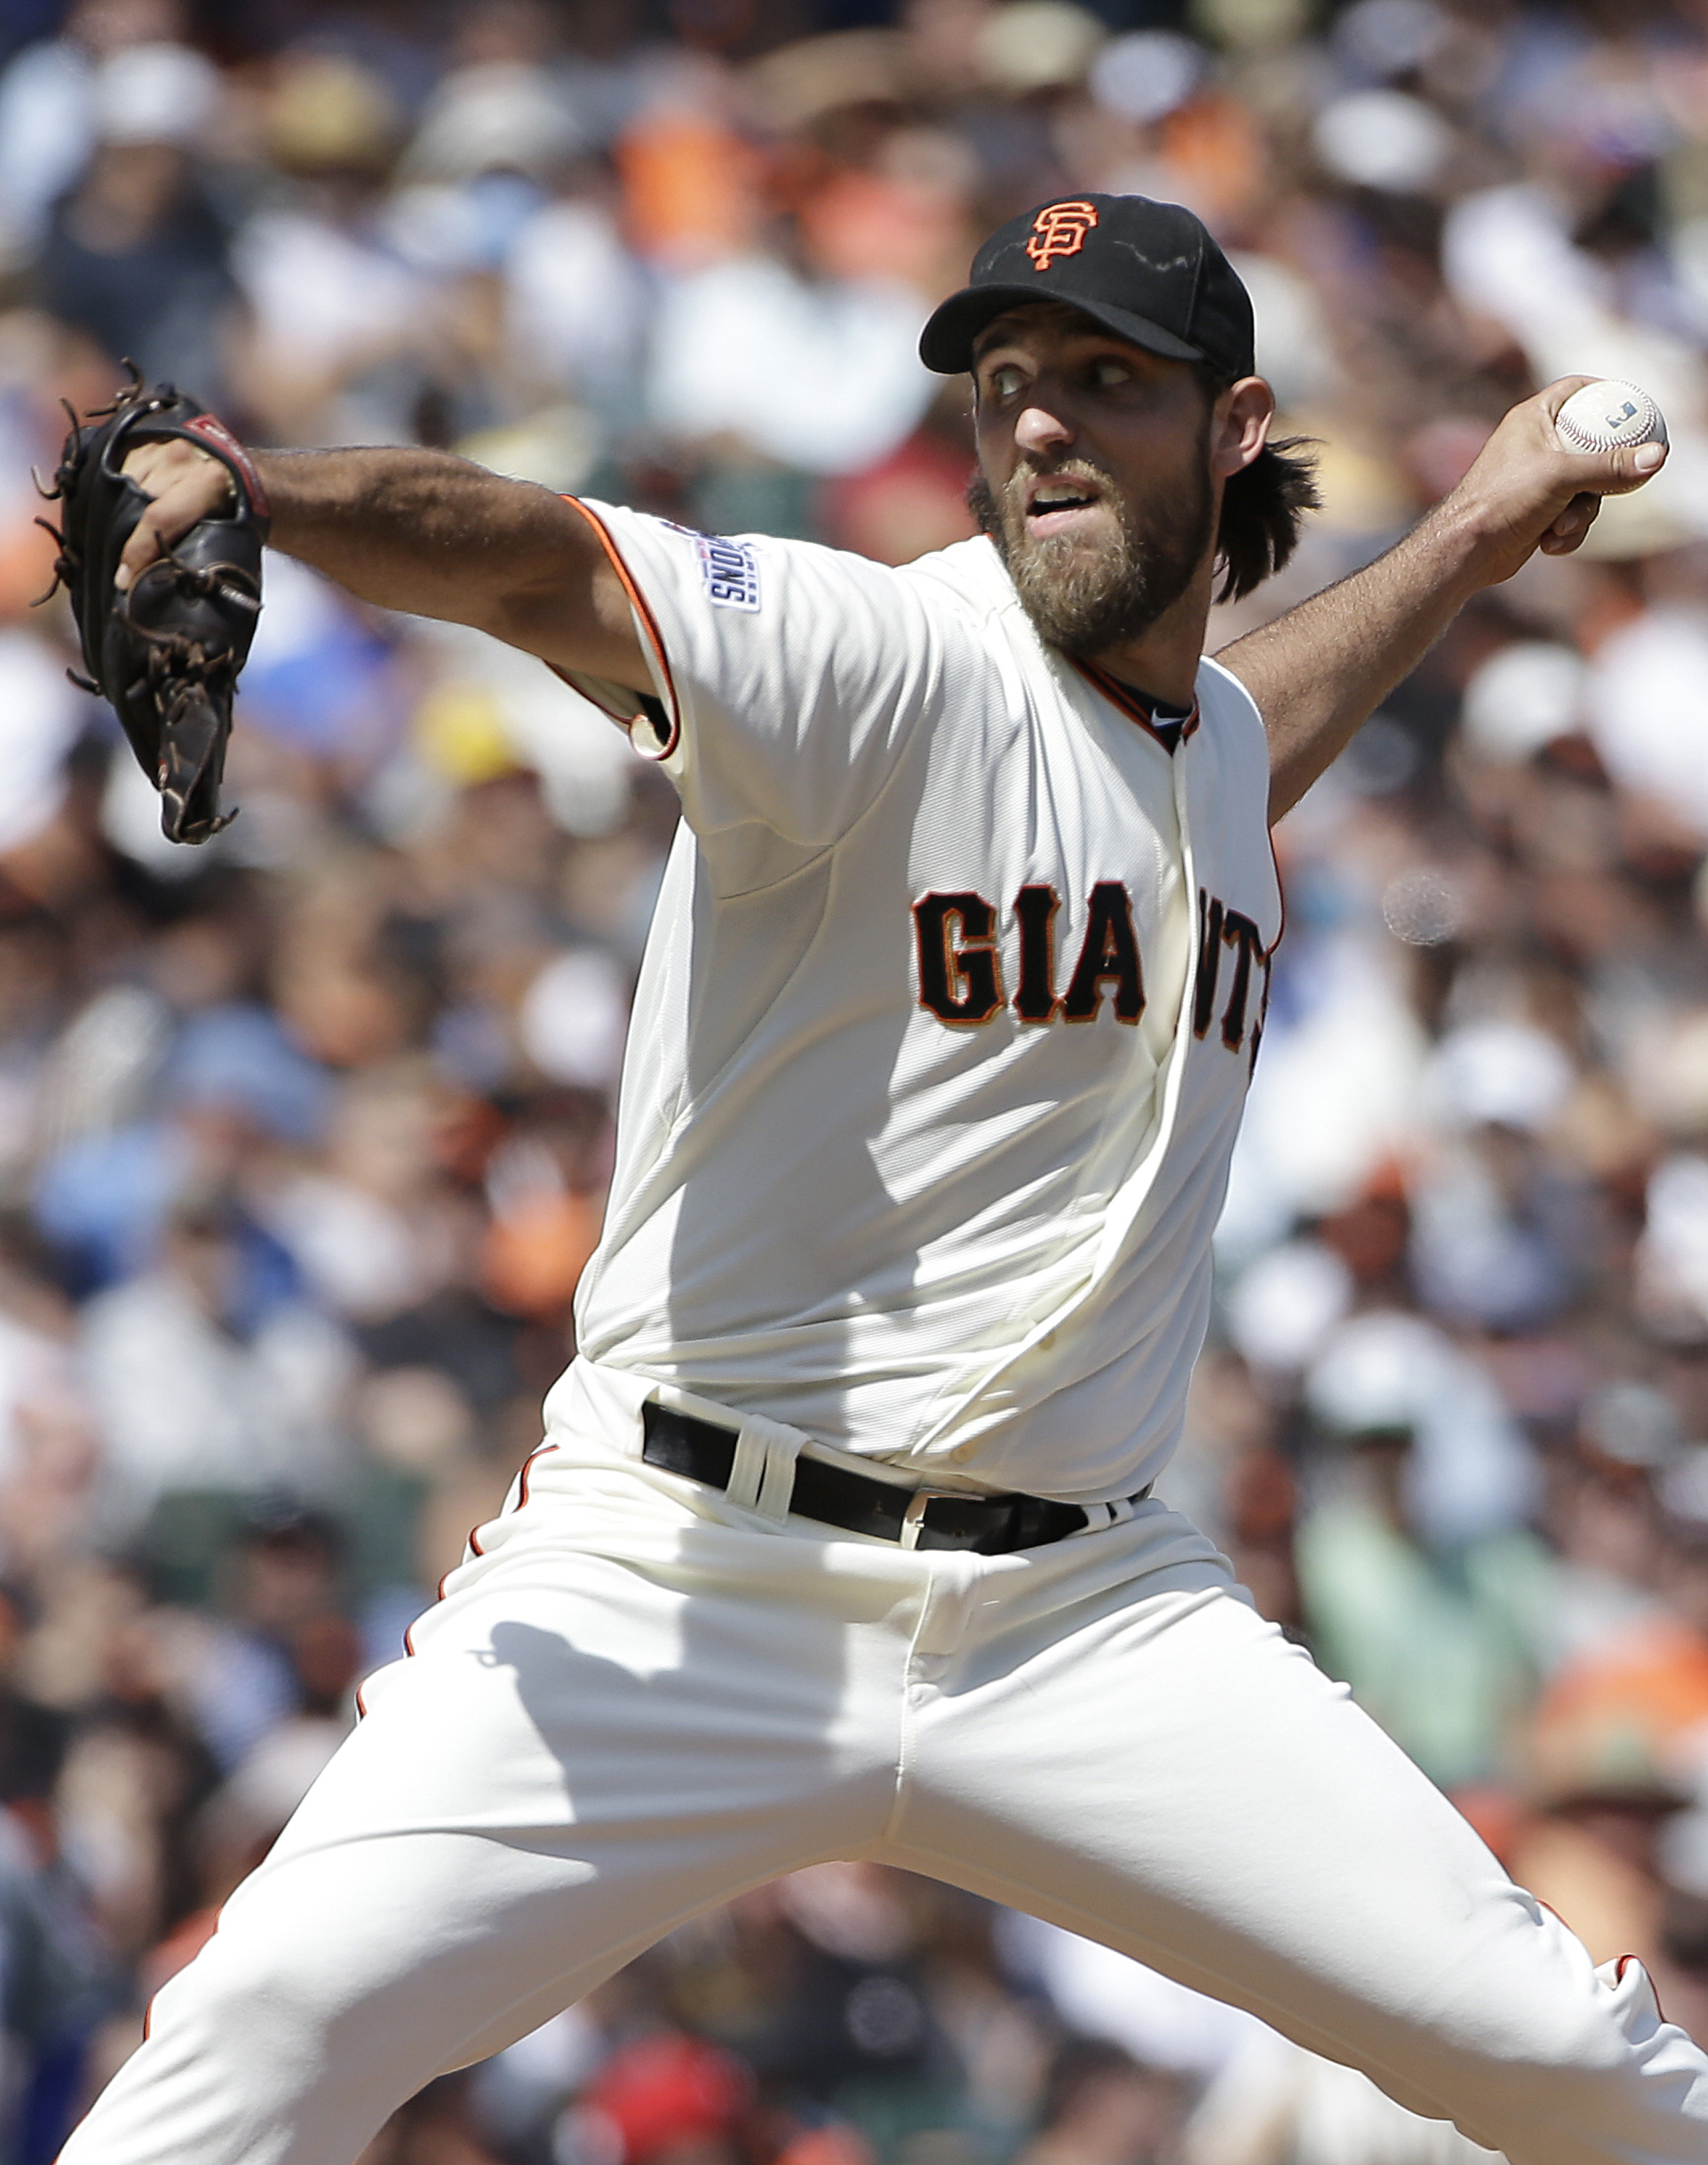 San Francisco Giants pitcher Madison Bumgarner throws against the Chicago Cubs during the sixth inning of a baseball game in San Francisco, Thursday, Aug. 27, 2015. (AP Photo/Jeff Chiu)